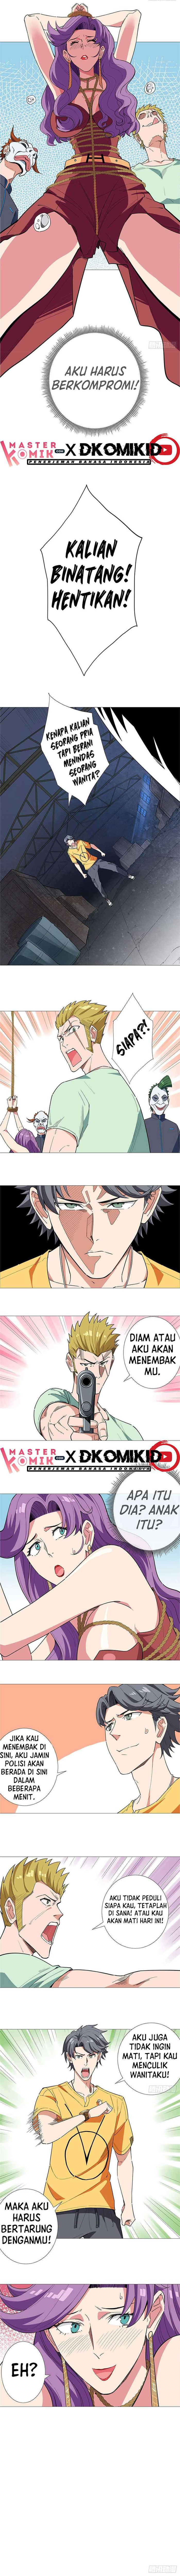 Need For Almighty Master Chapter 14